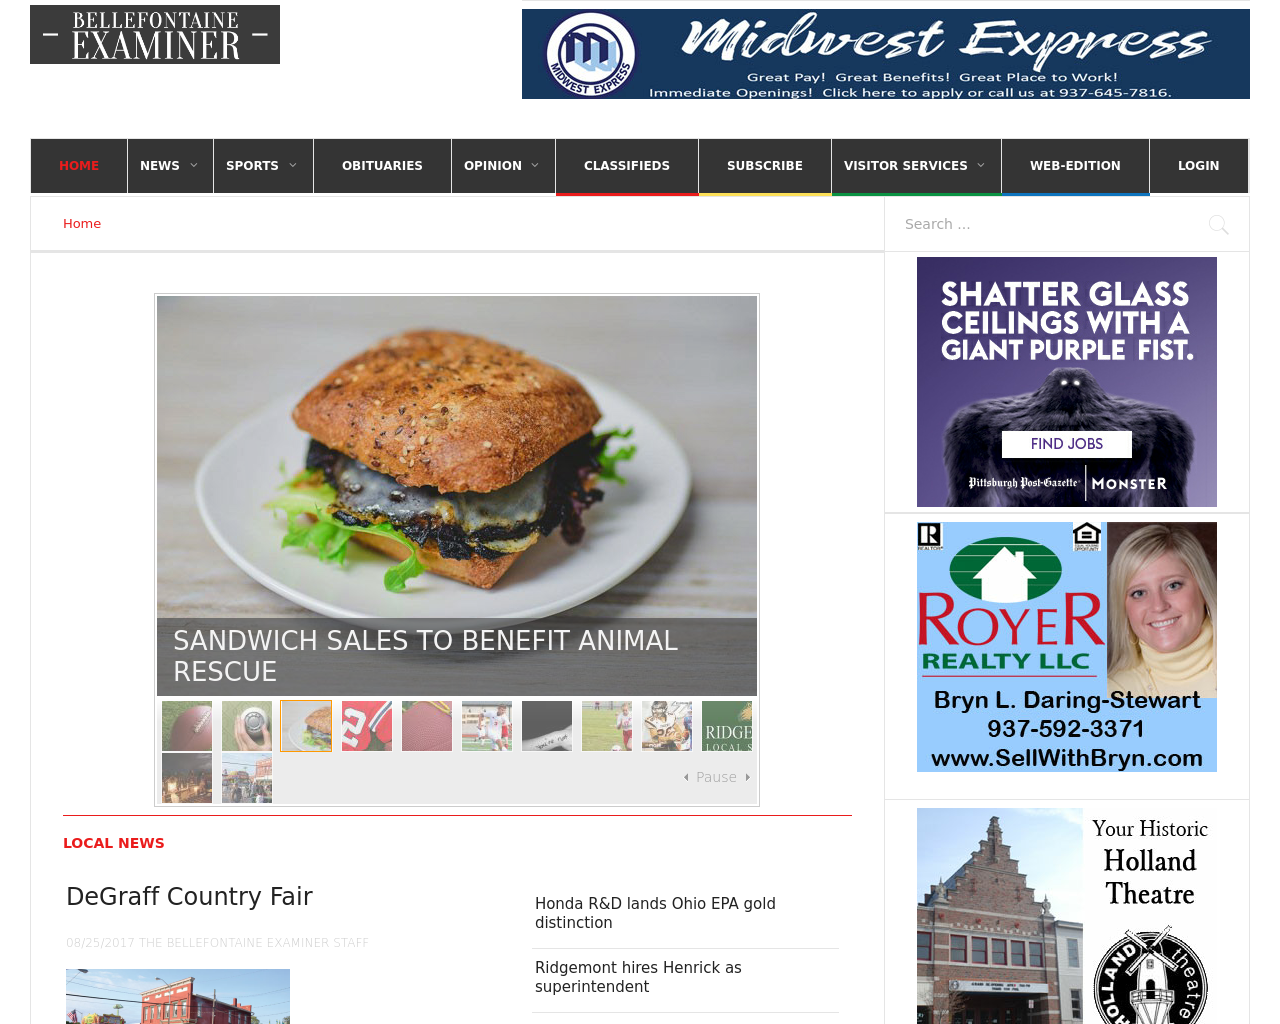 Bellefontaine-Examiner-Online-Advertising-Reviews-Pricing